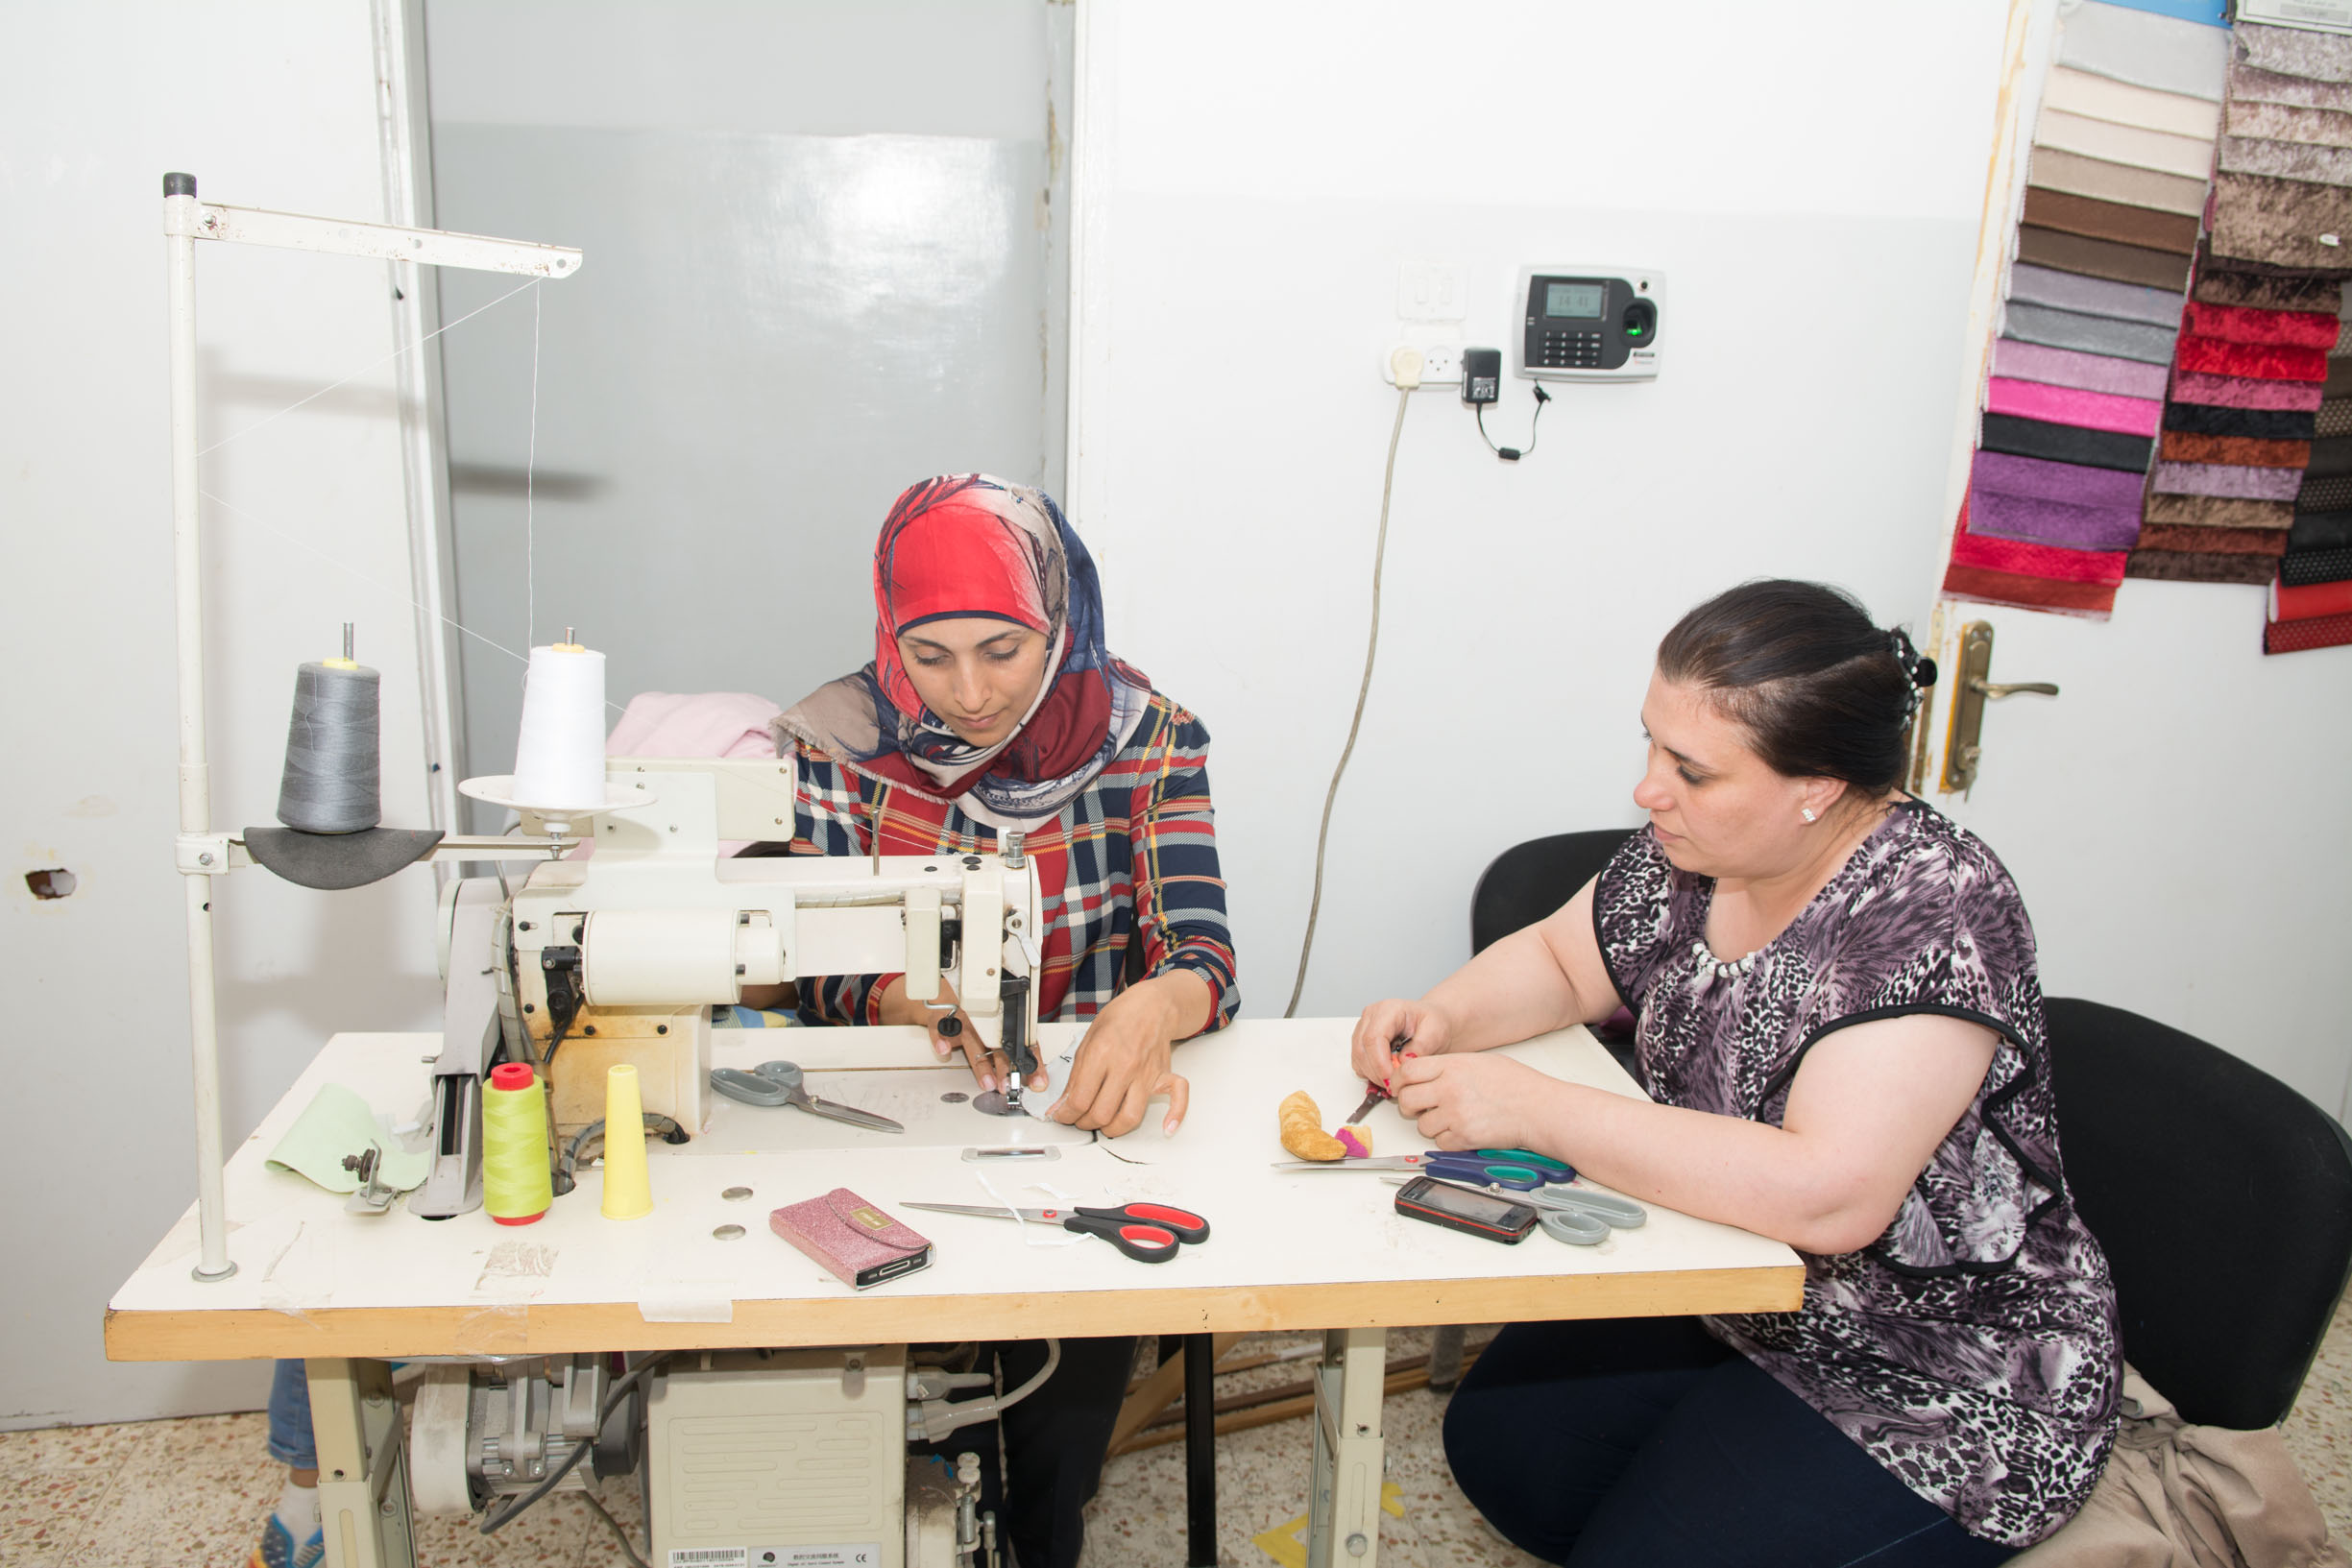 Child-Cup-Full-Nonprofit-Sewing-Facility-Copyright-Threadies-2015-DSC_8522.jpg